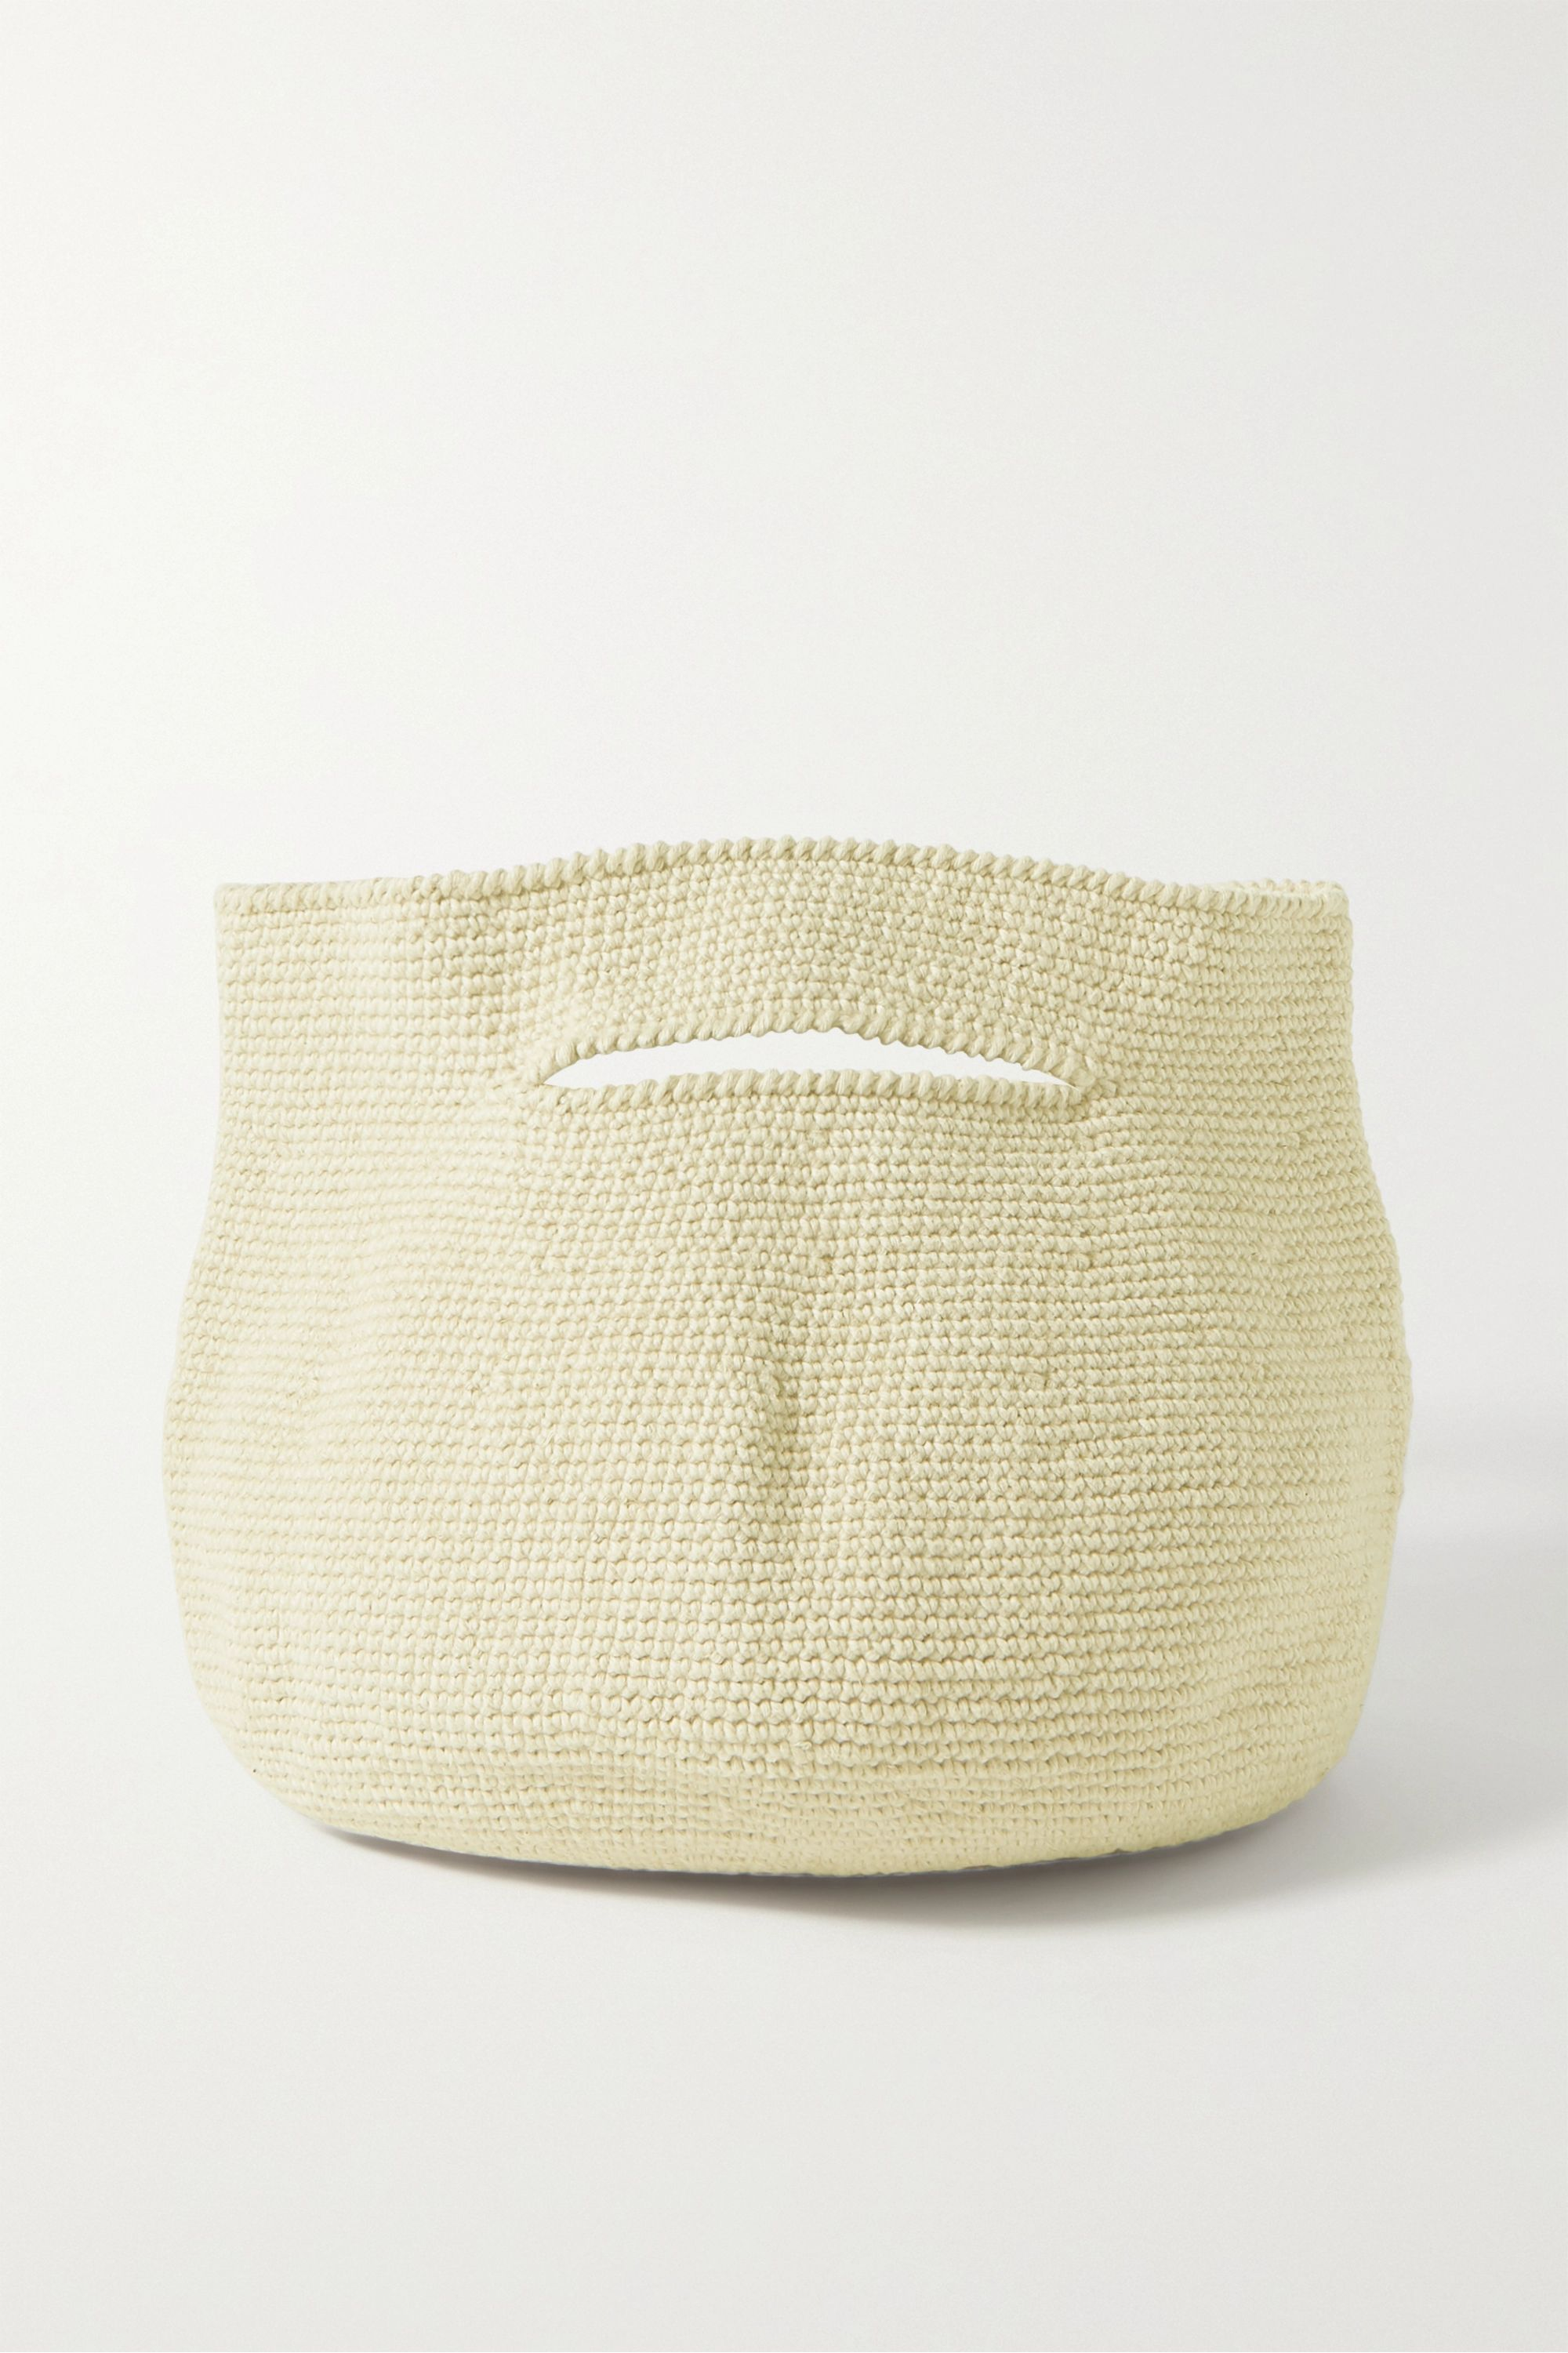 Lauren Manoogian Soft Baby Bowl Pima cotton and linen-blend tote